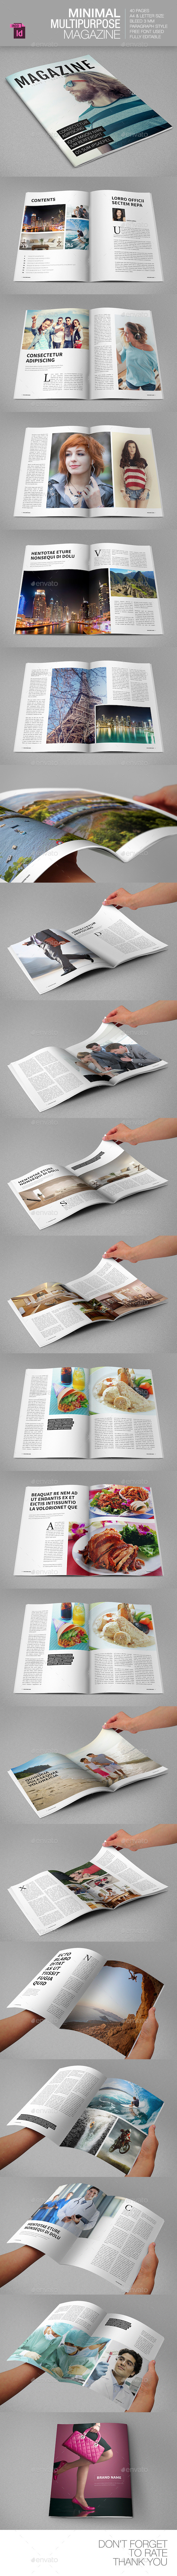 GraphicRiver Minimal Multipurpose Magazine 9204891